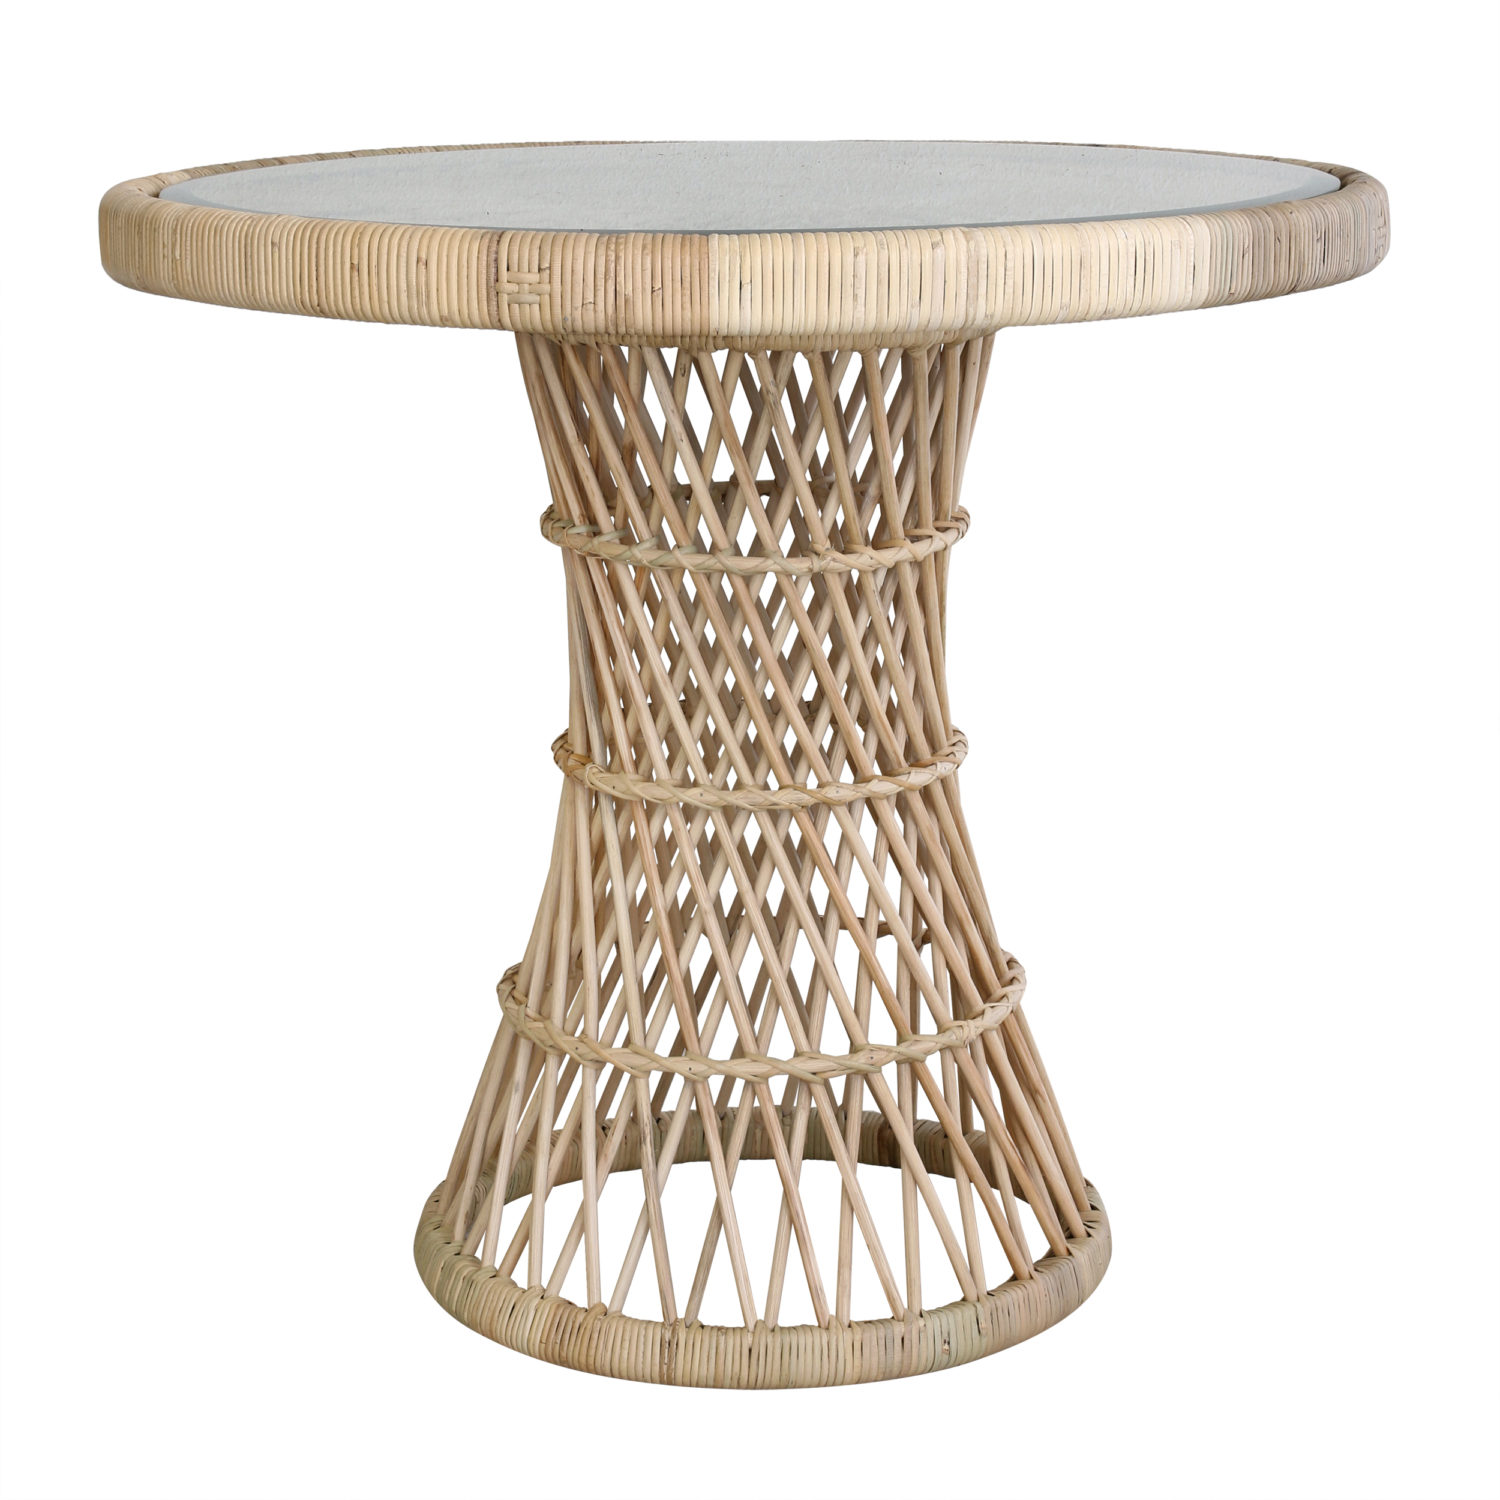 TABLE 1970 style rattan side table with smokey glass MY